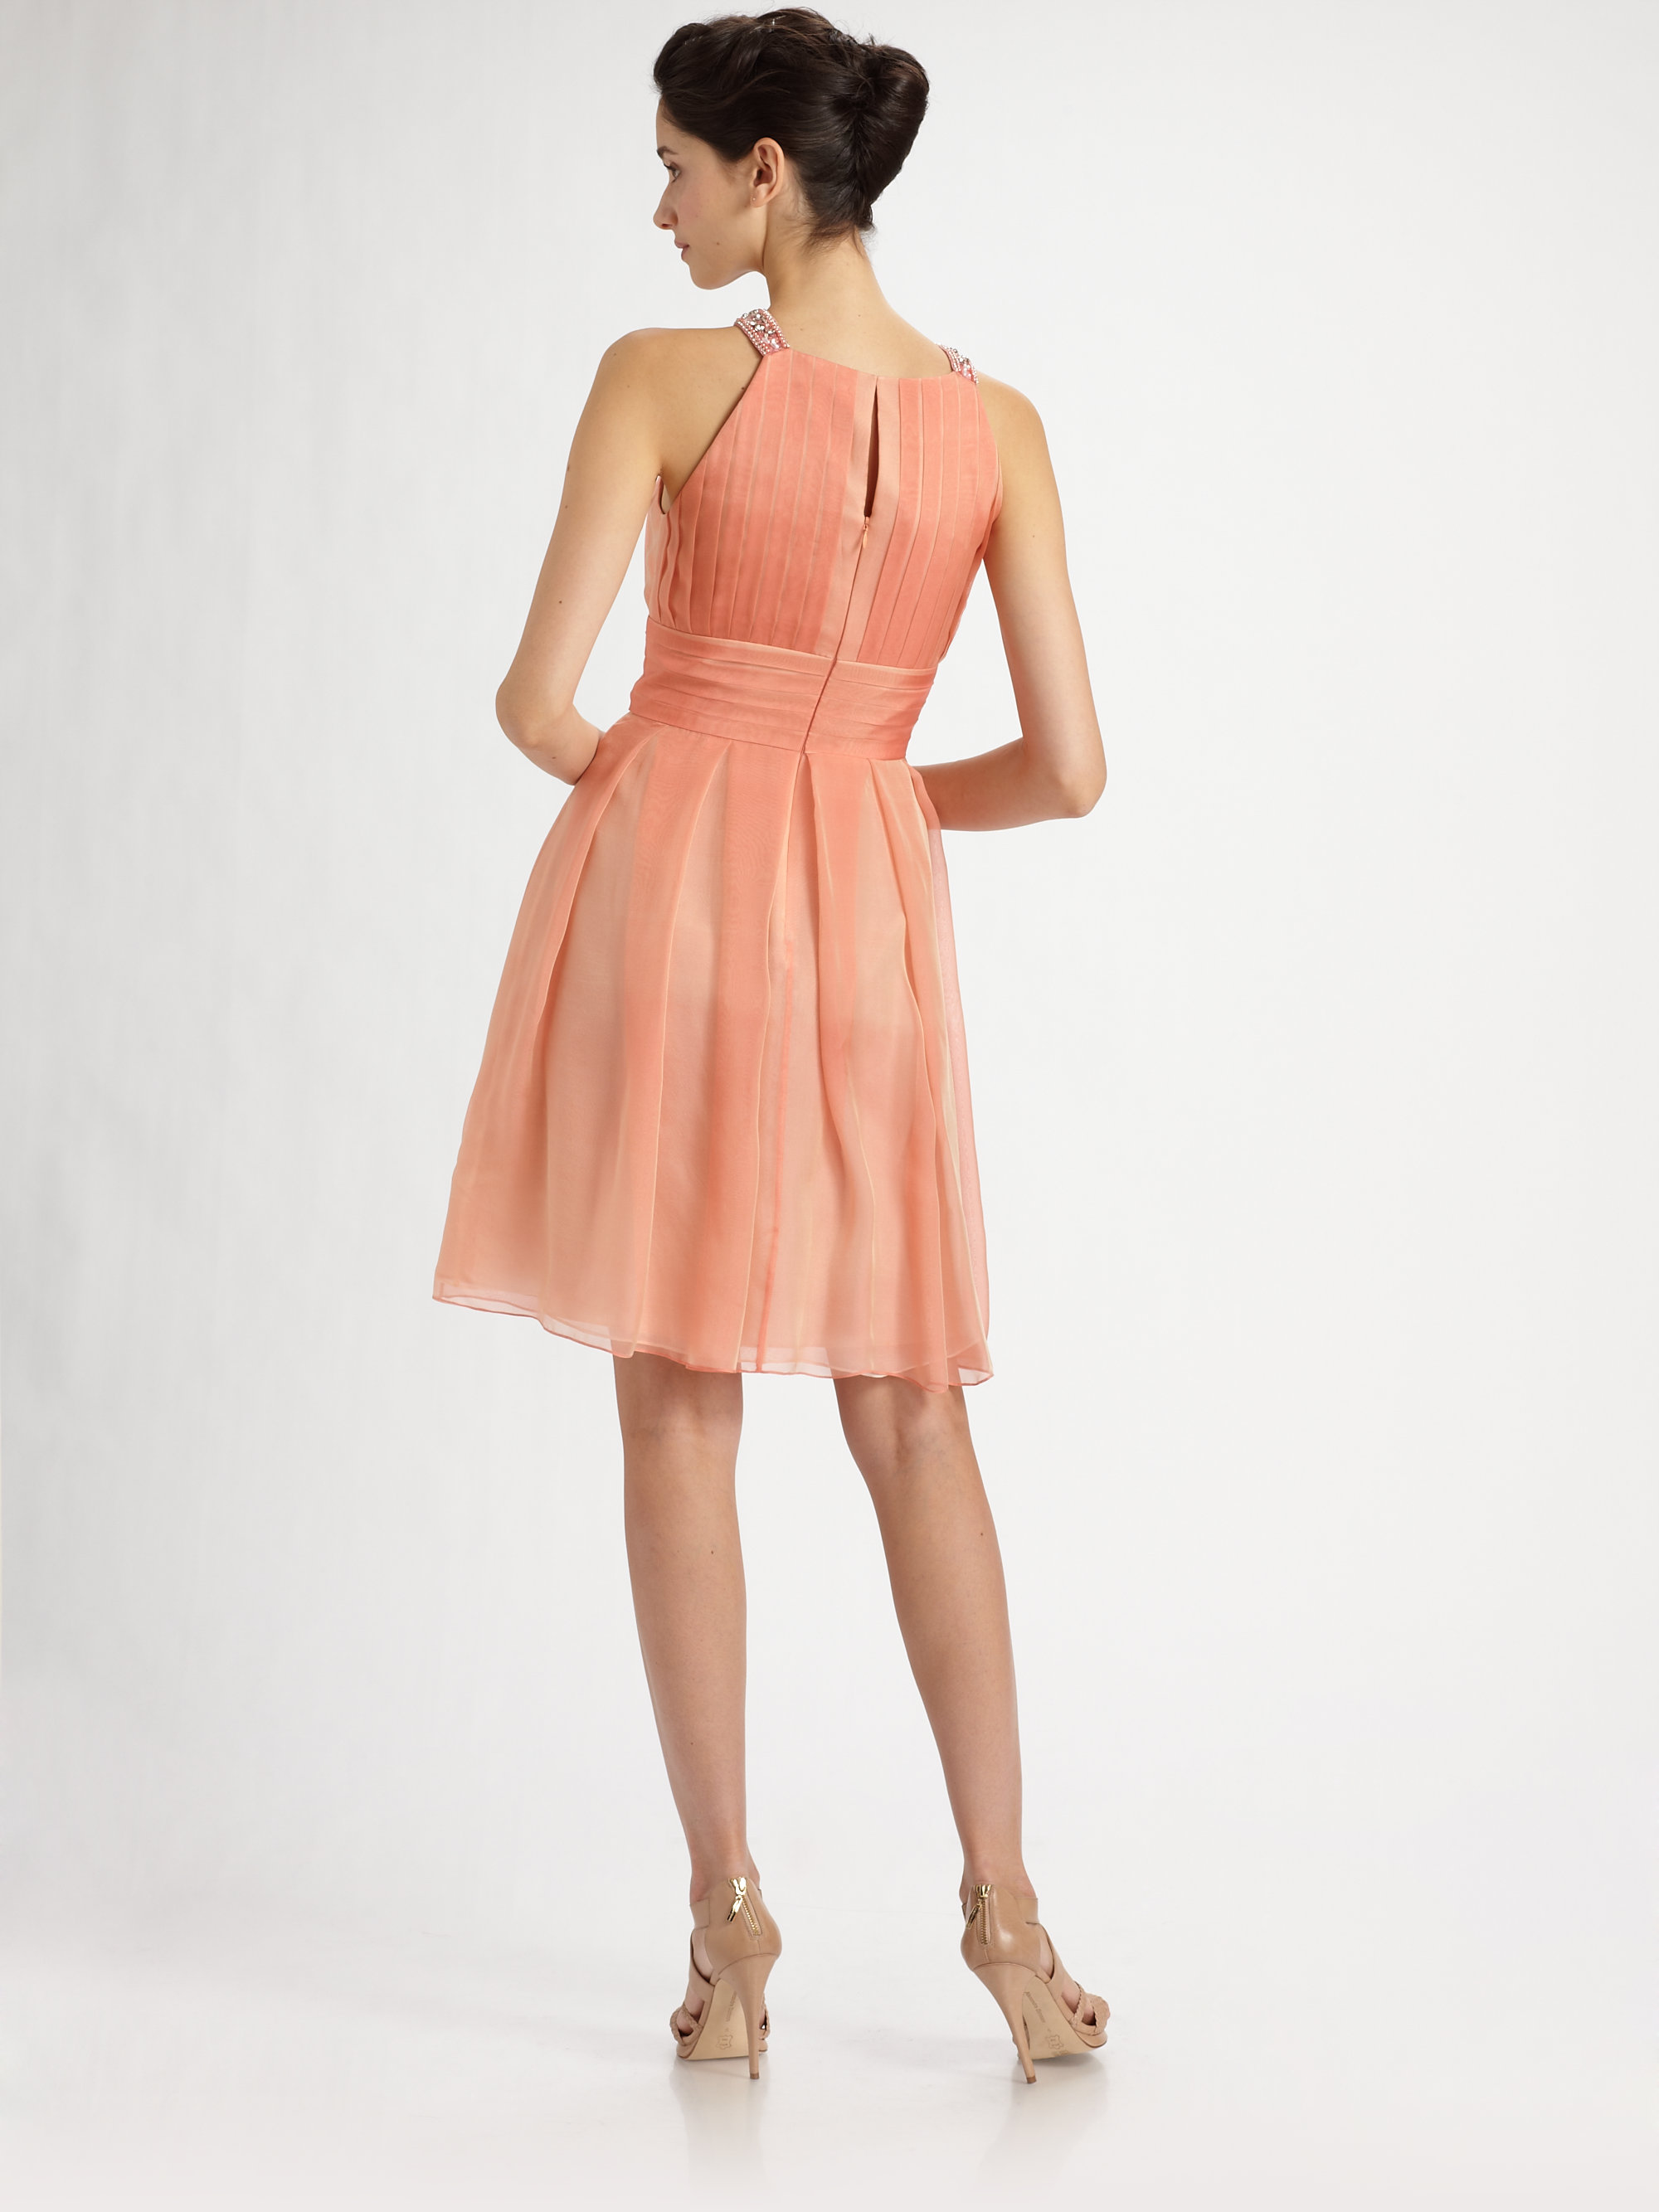 Lyst - Kay Unger Beaded Silk Chiffon Cocktail Dress in Pink